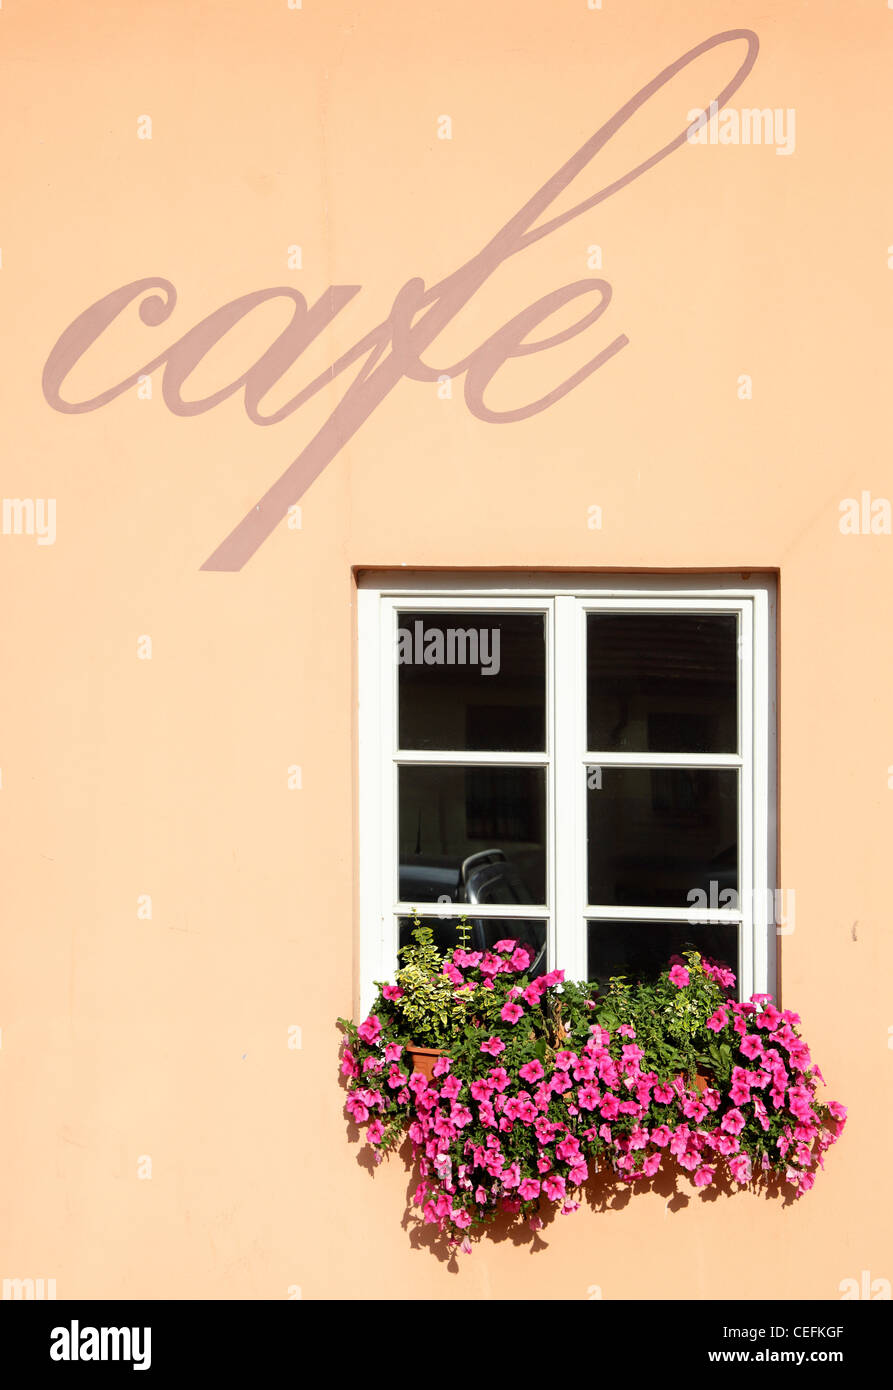 Wall of cafe with window and flowers - Stock Image